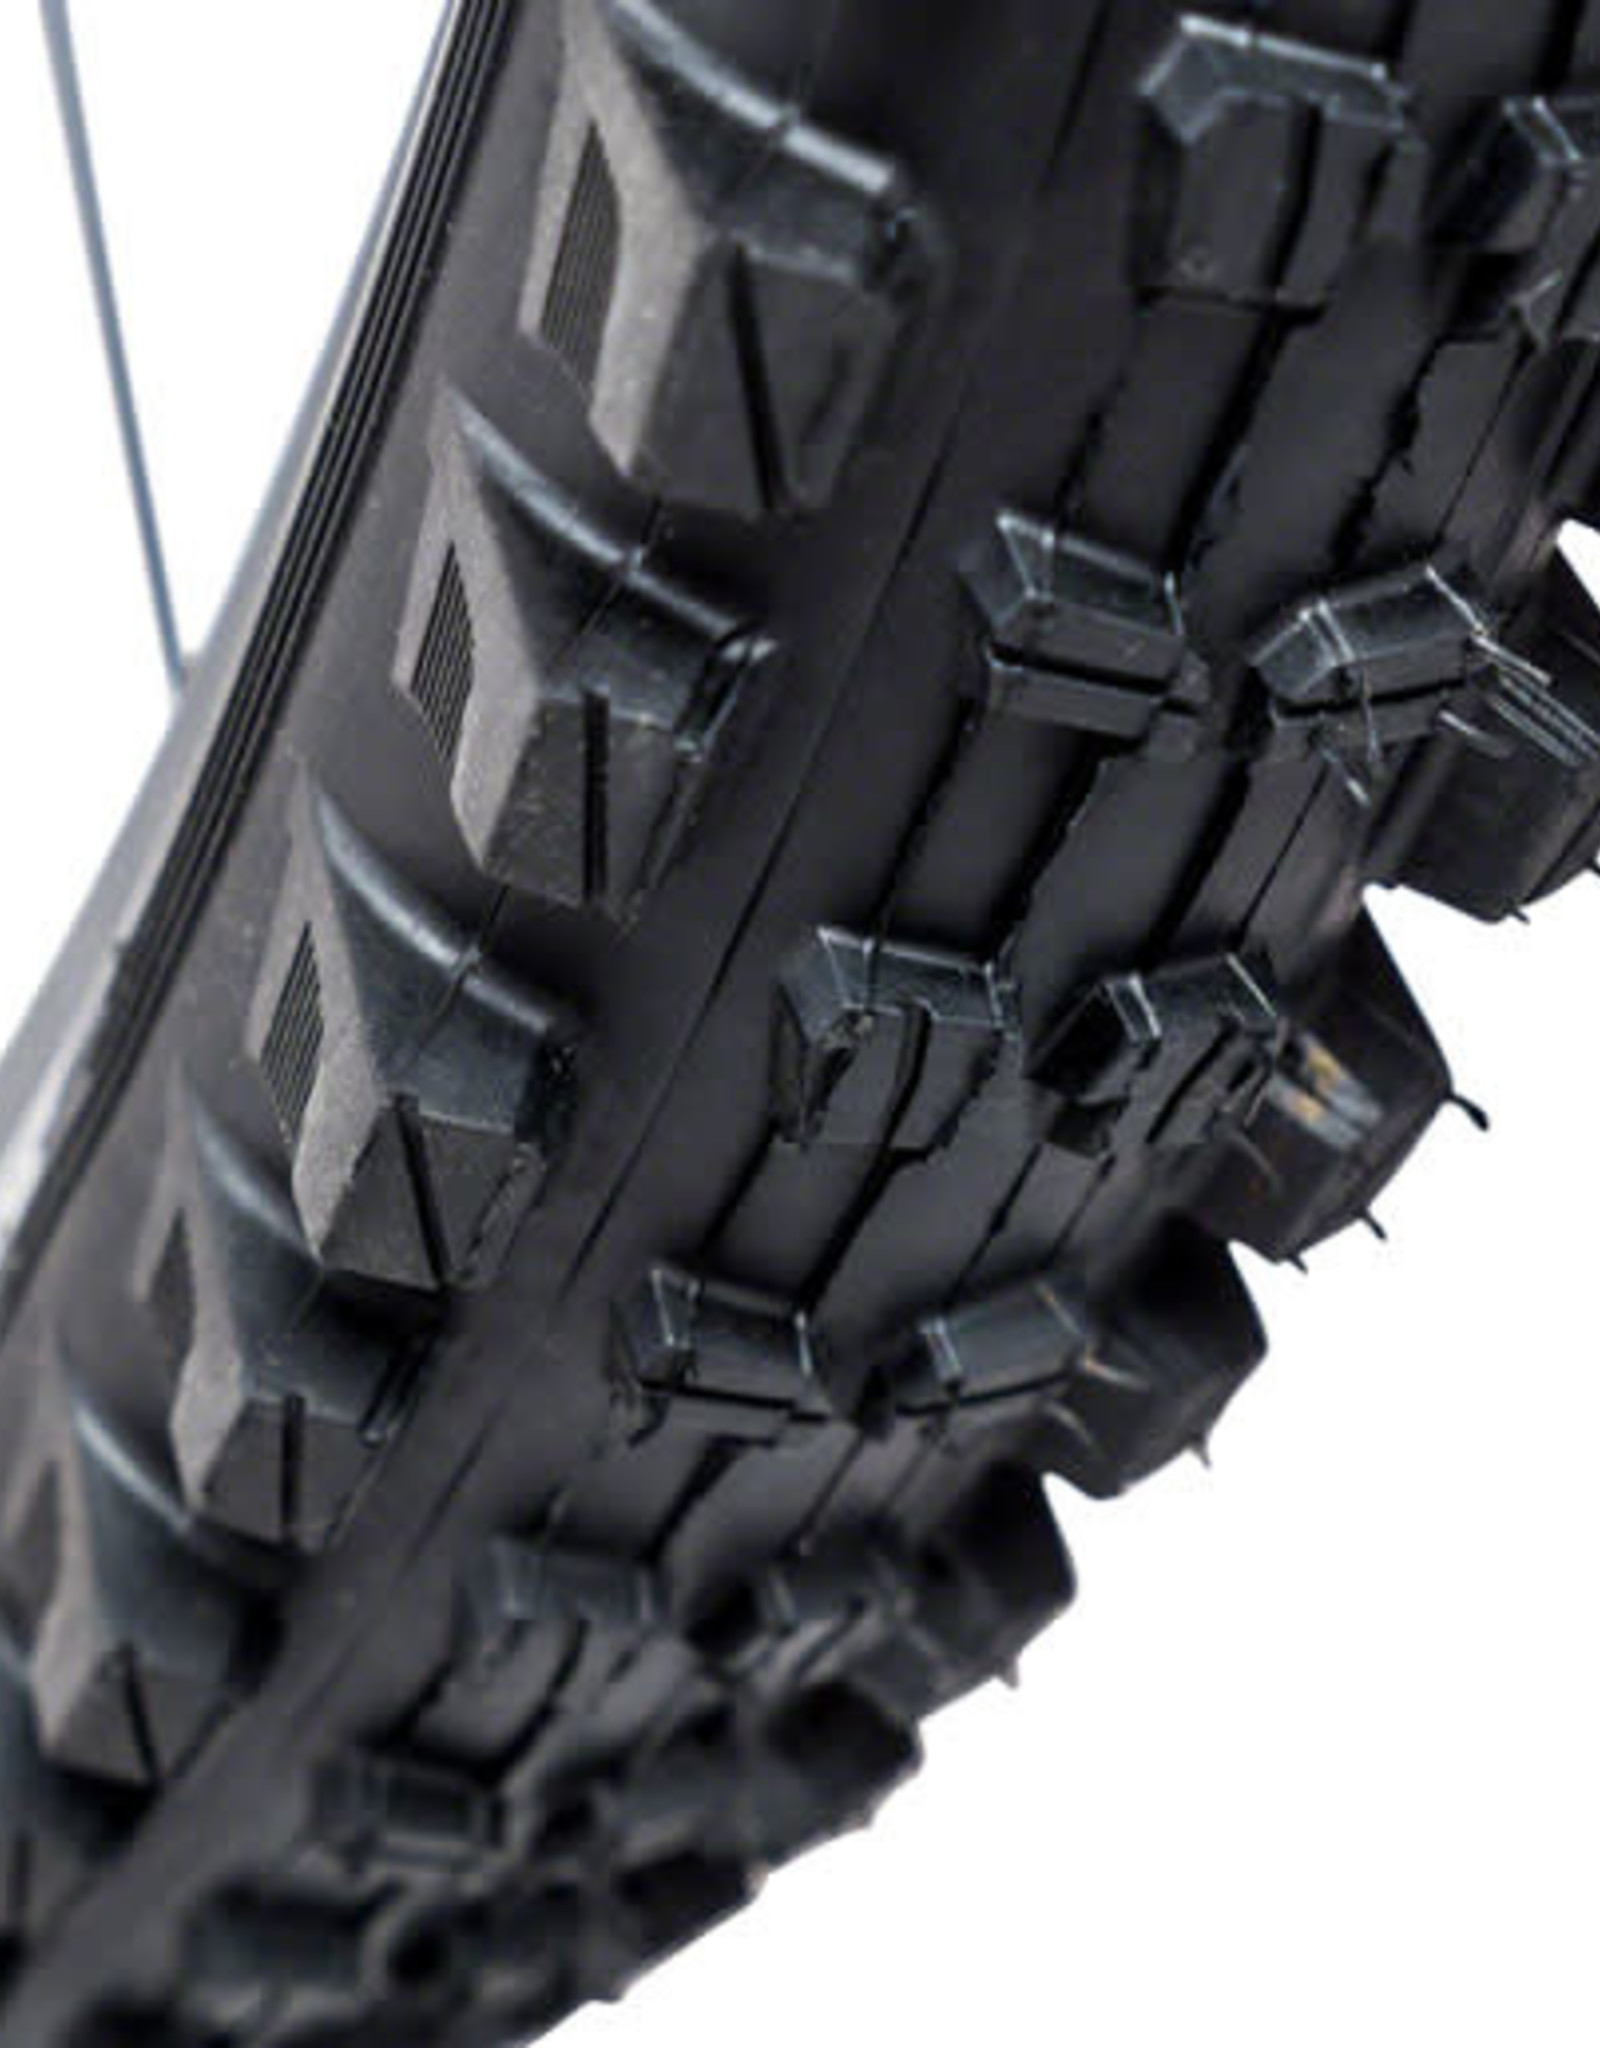 e*thirteen by The Hive TRS Plus Tire - 29 x 2.35, Tubeless, Folding, Black